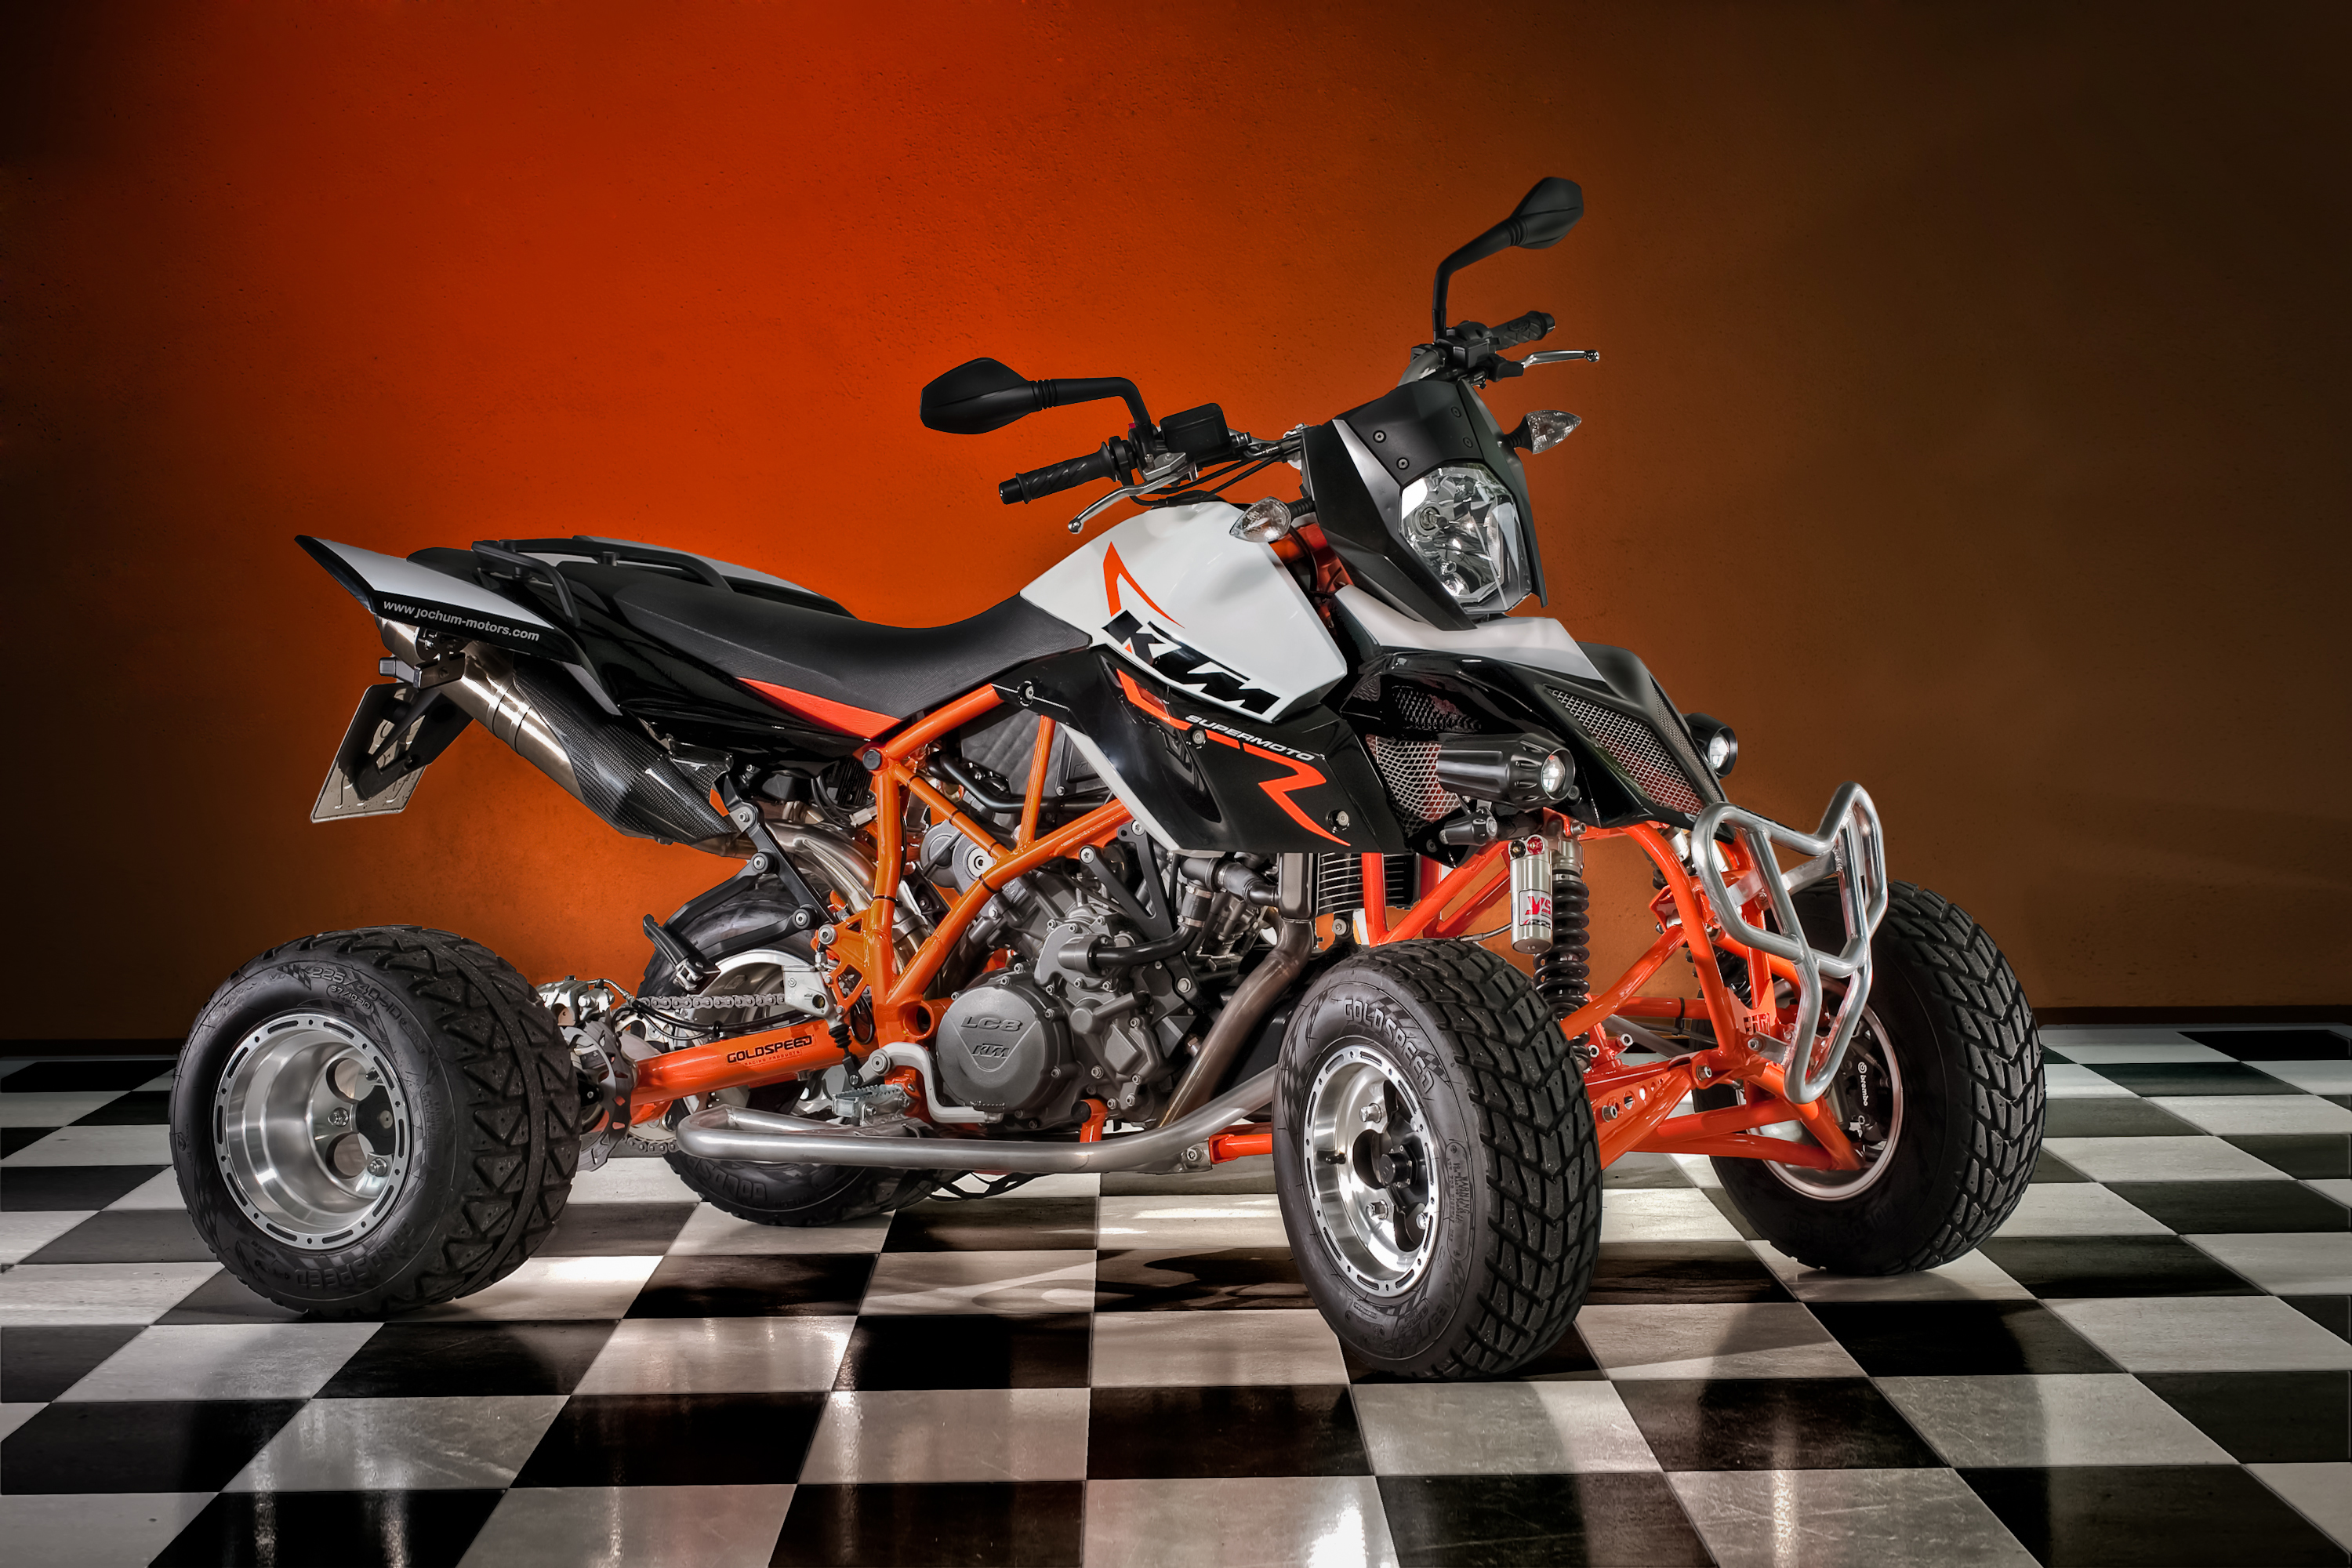 Ktm Wikipedia >> File:KTM Quad 990.jpg - Wikimedia Commons